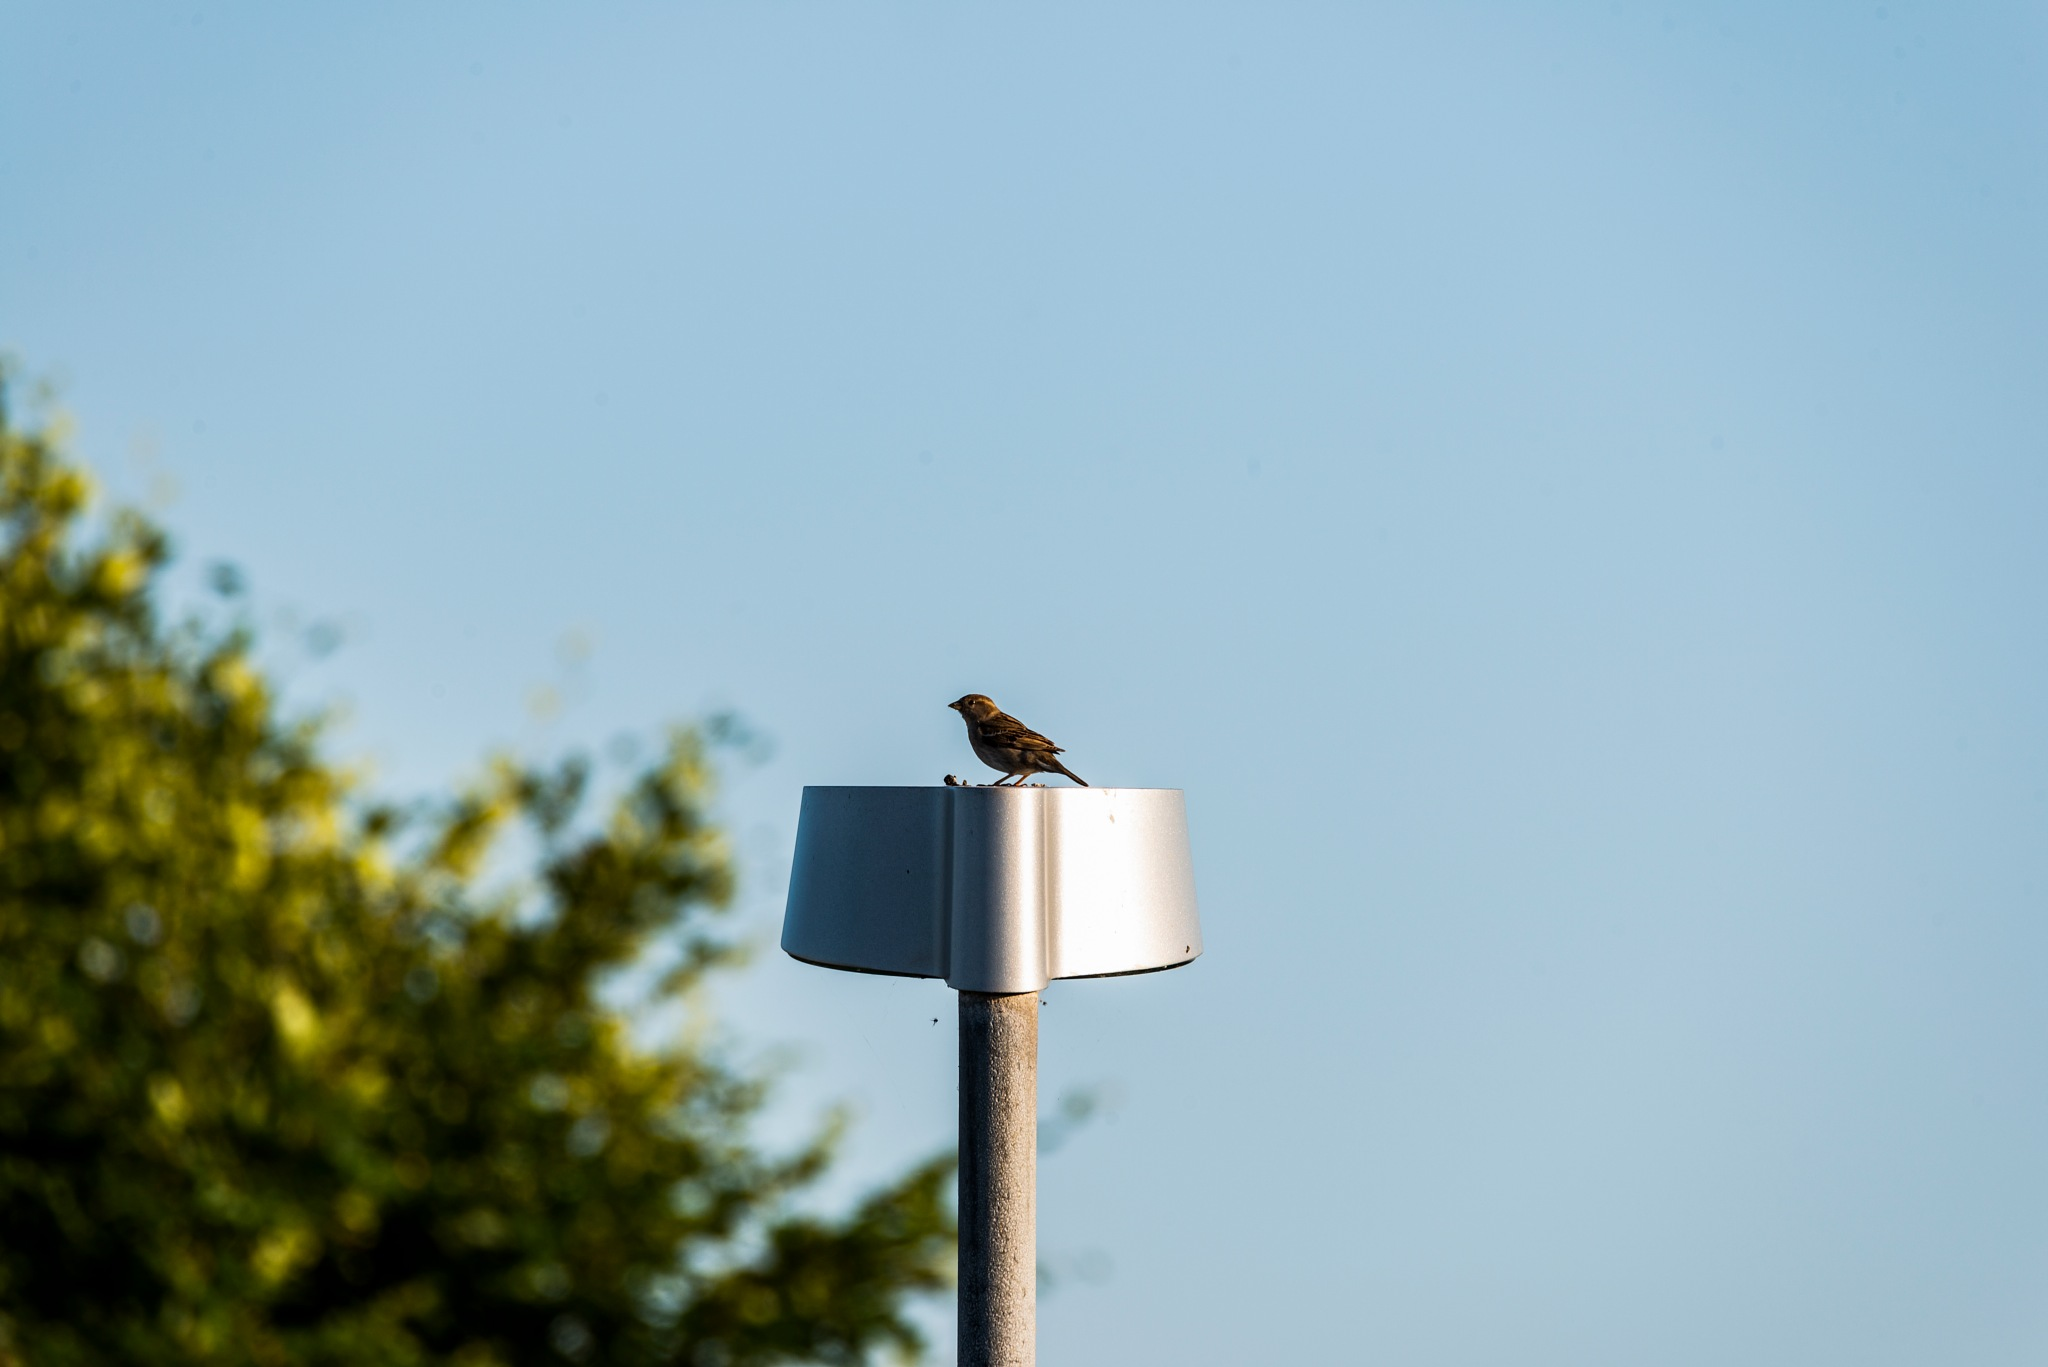 Female sparrow on a lamp post by Steen Skov